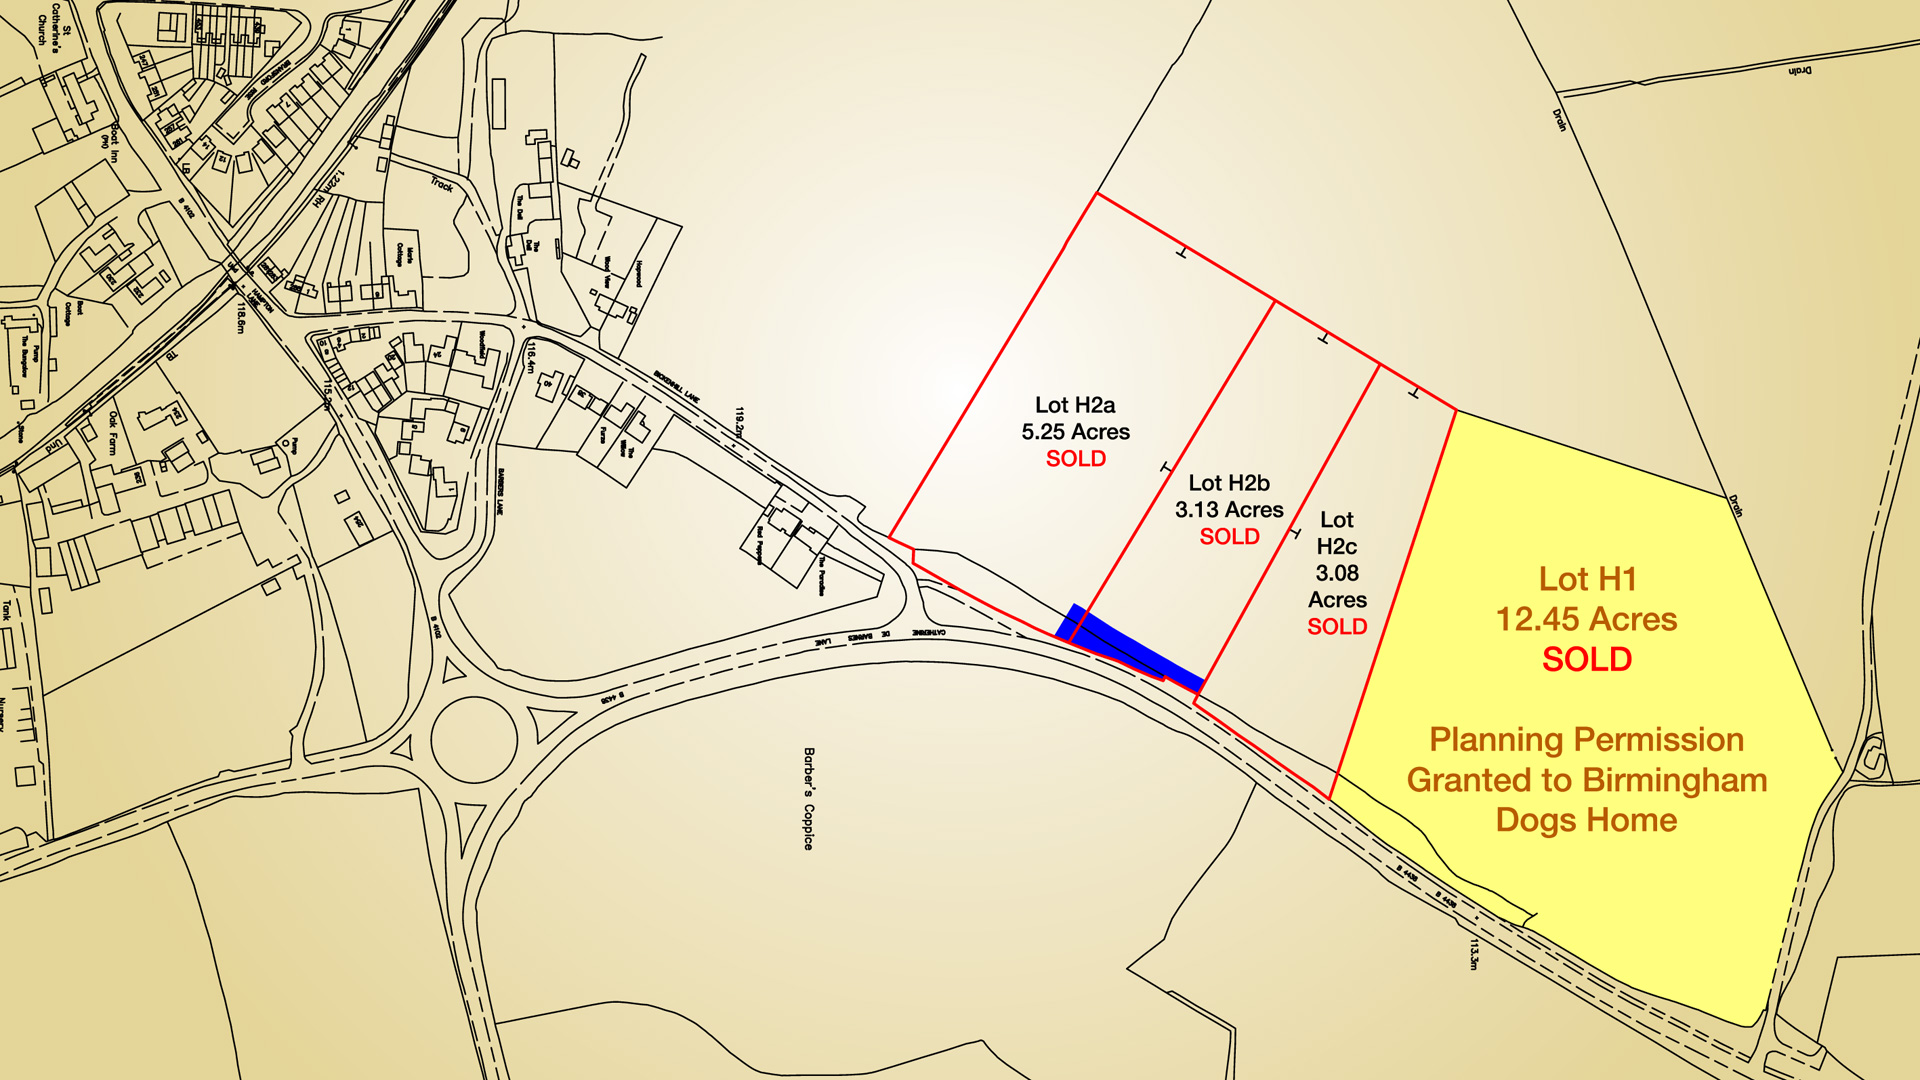 Land for sale in Solihull, Birmingham